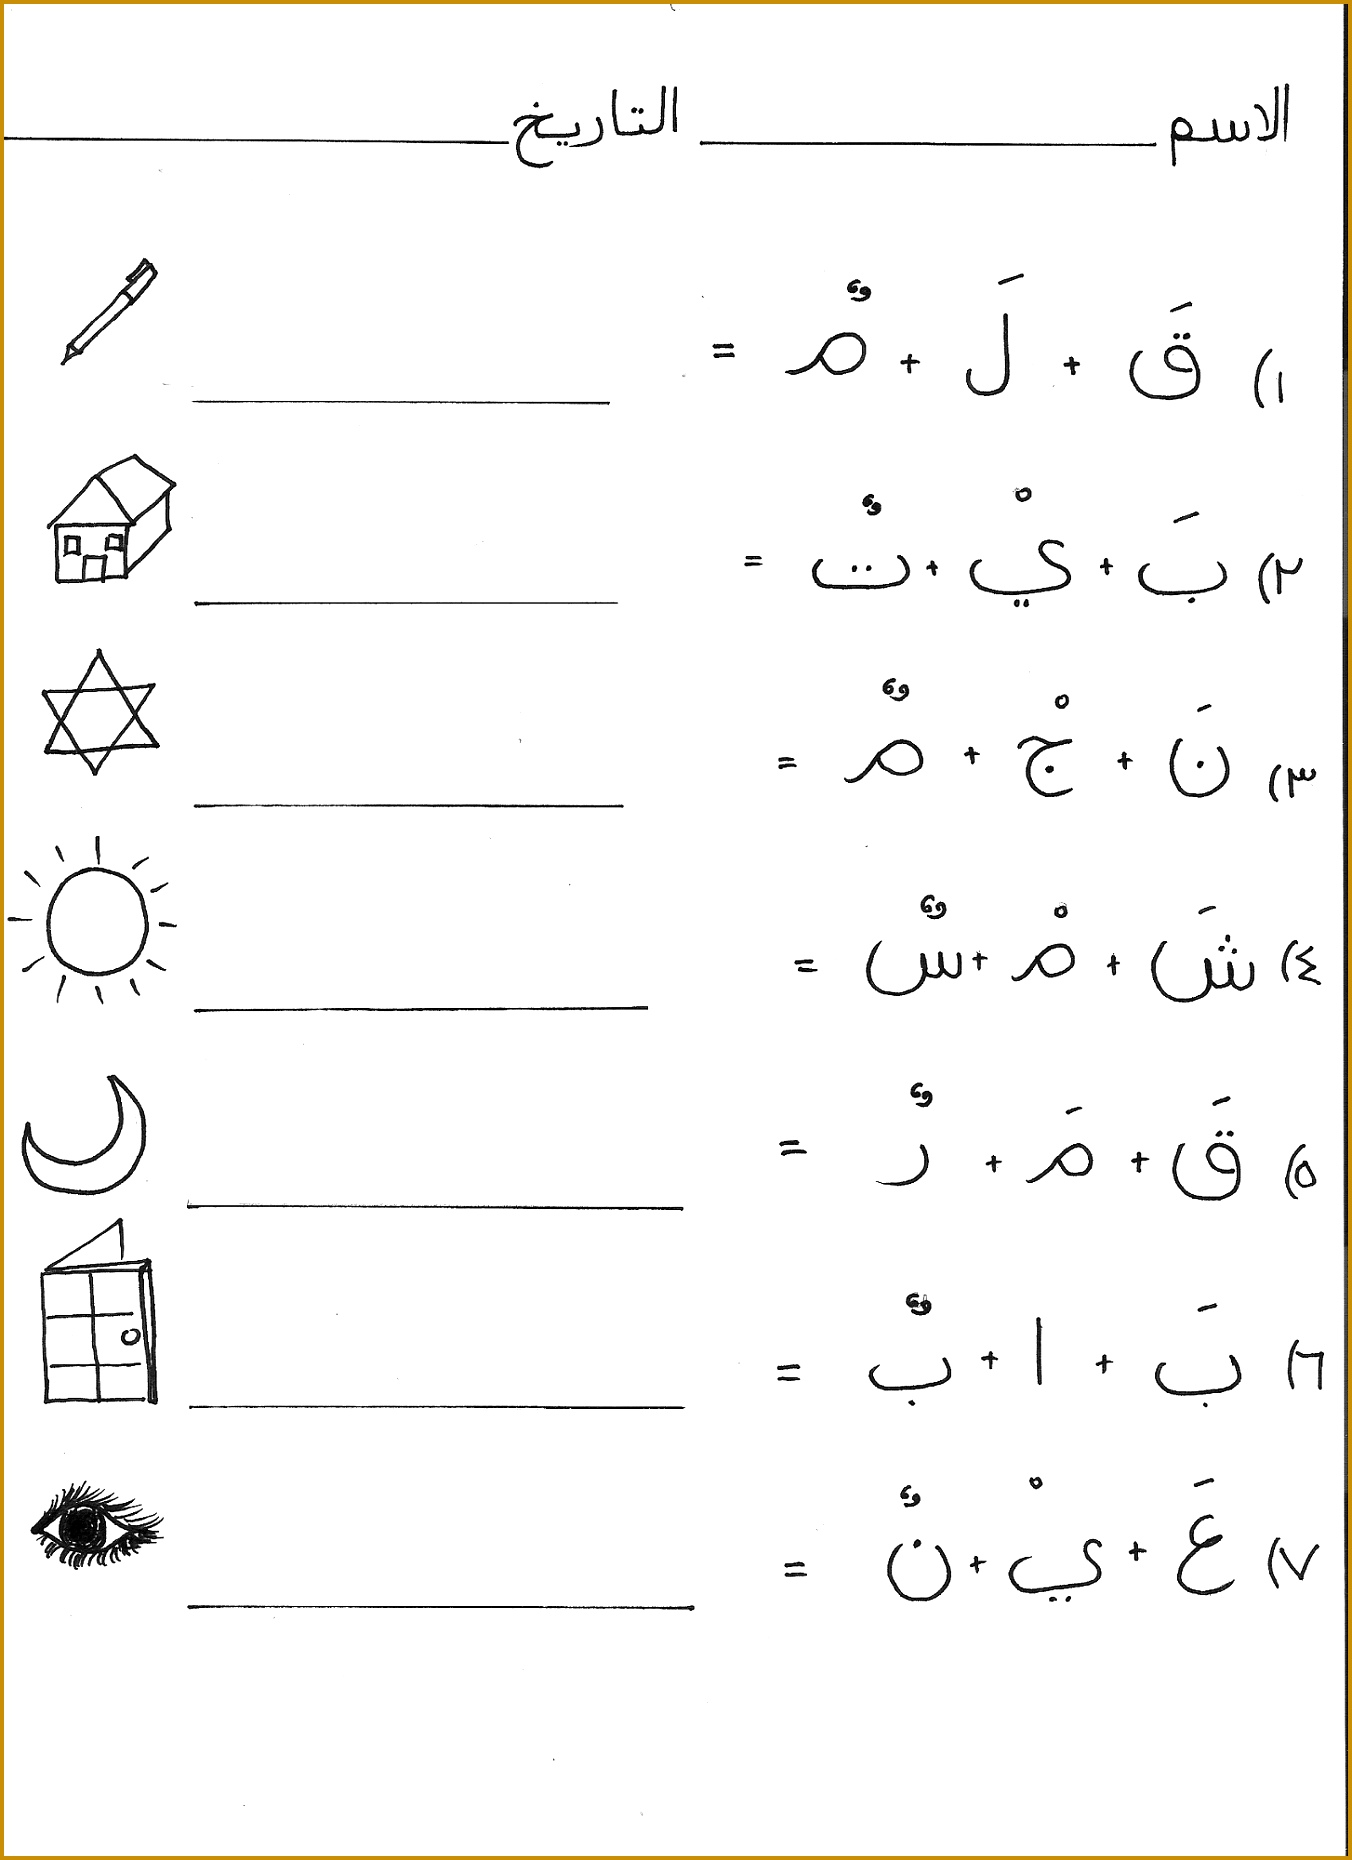 Arabic Alphabet Worksheets 13521860